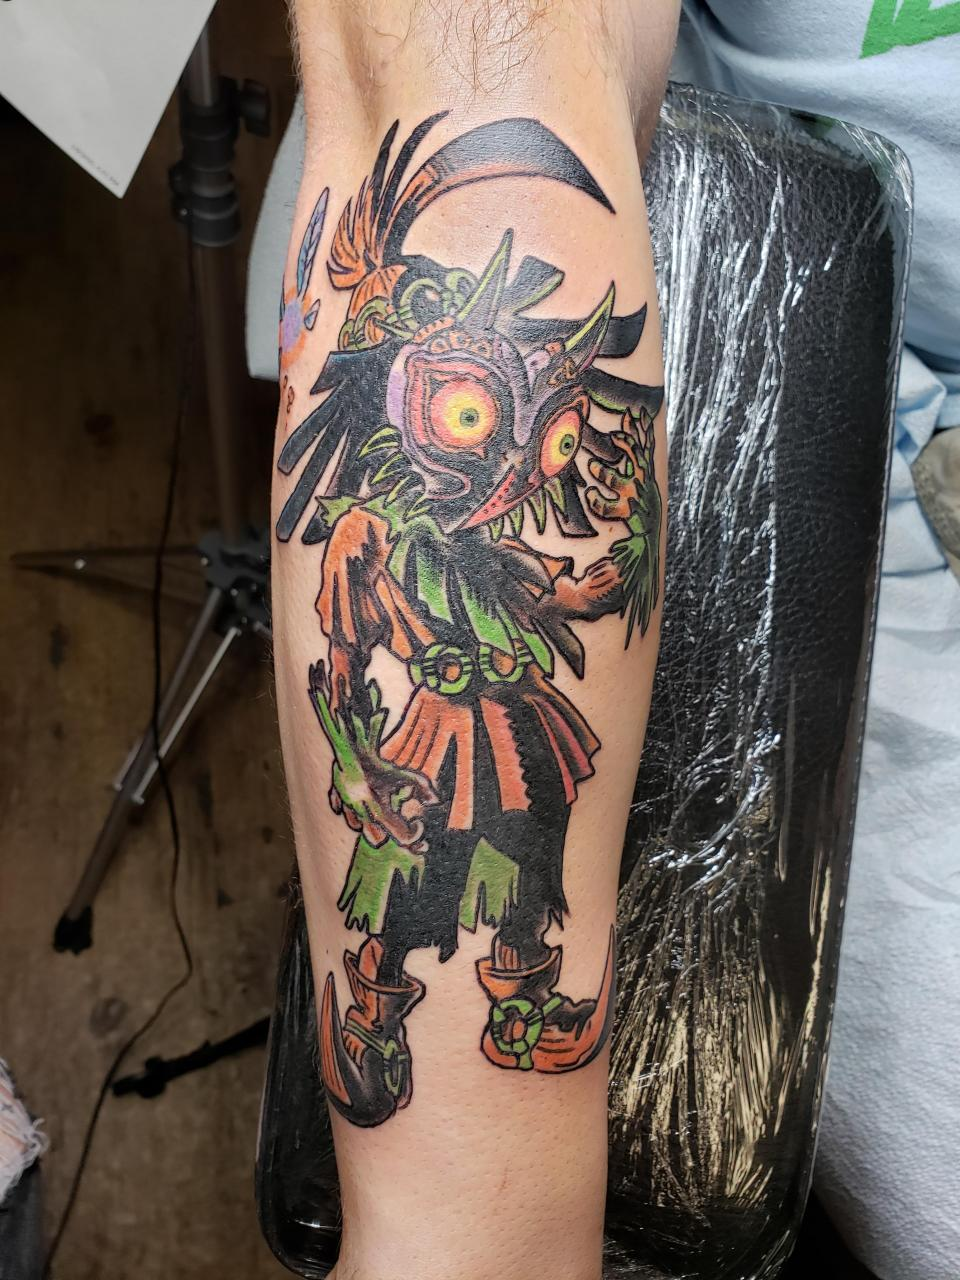 My newest addition to my arm, Skullkid done by Crystal at Mr Luckys Tattoo in San Antonio, TX.